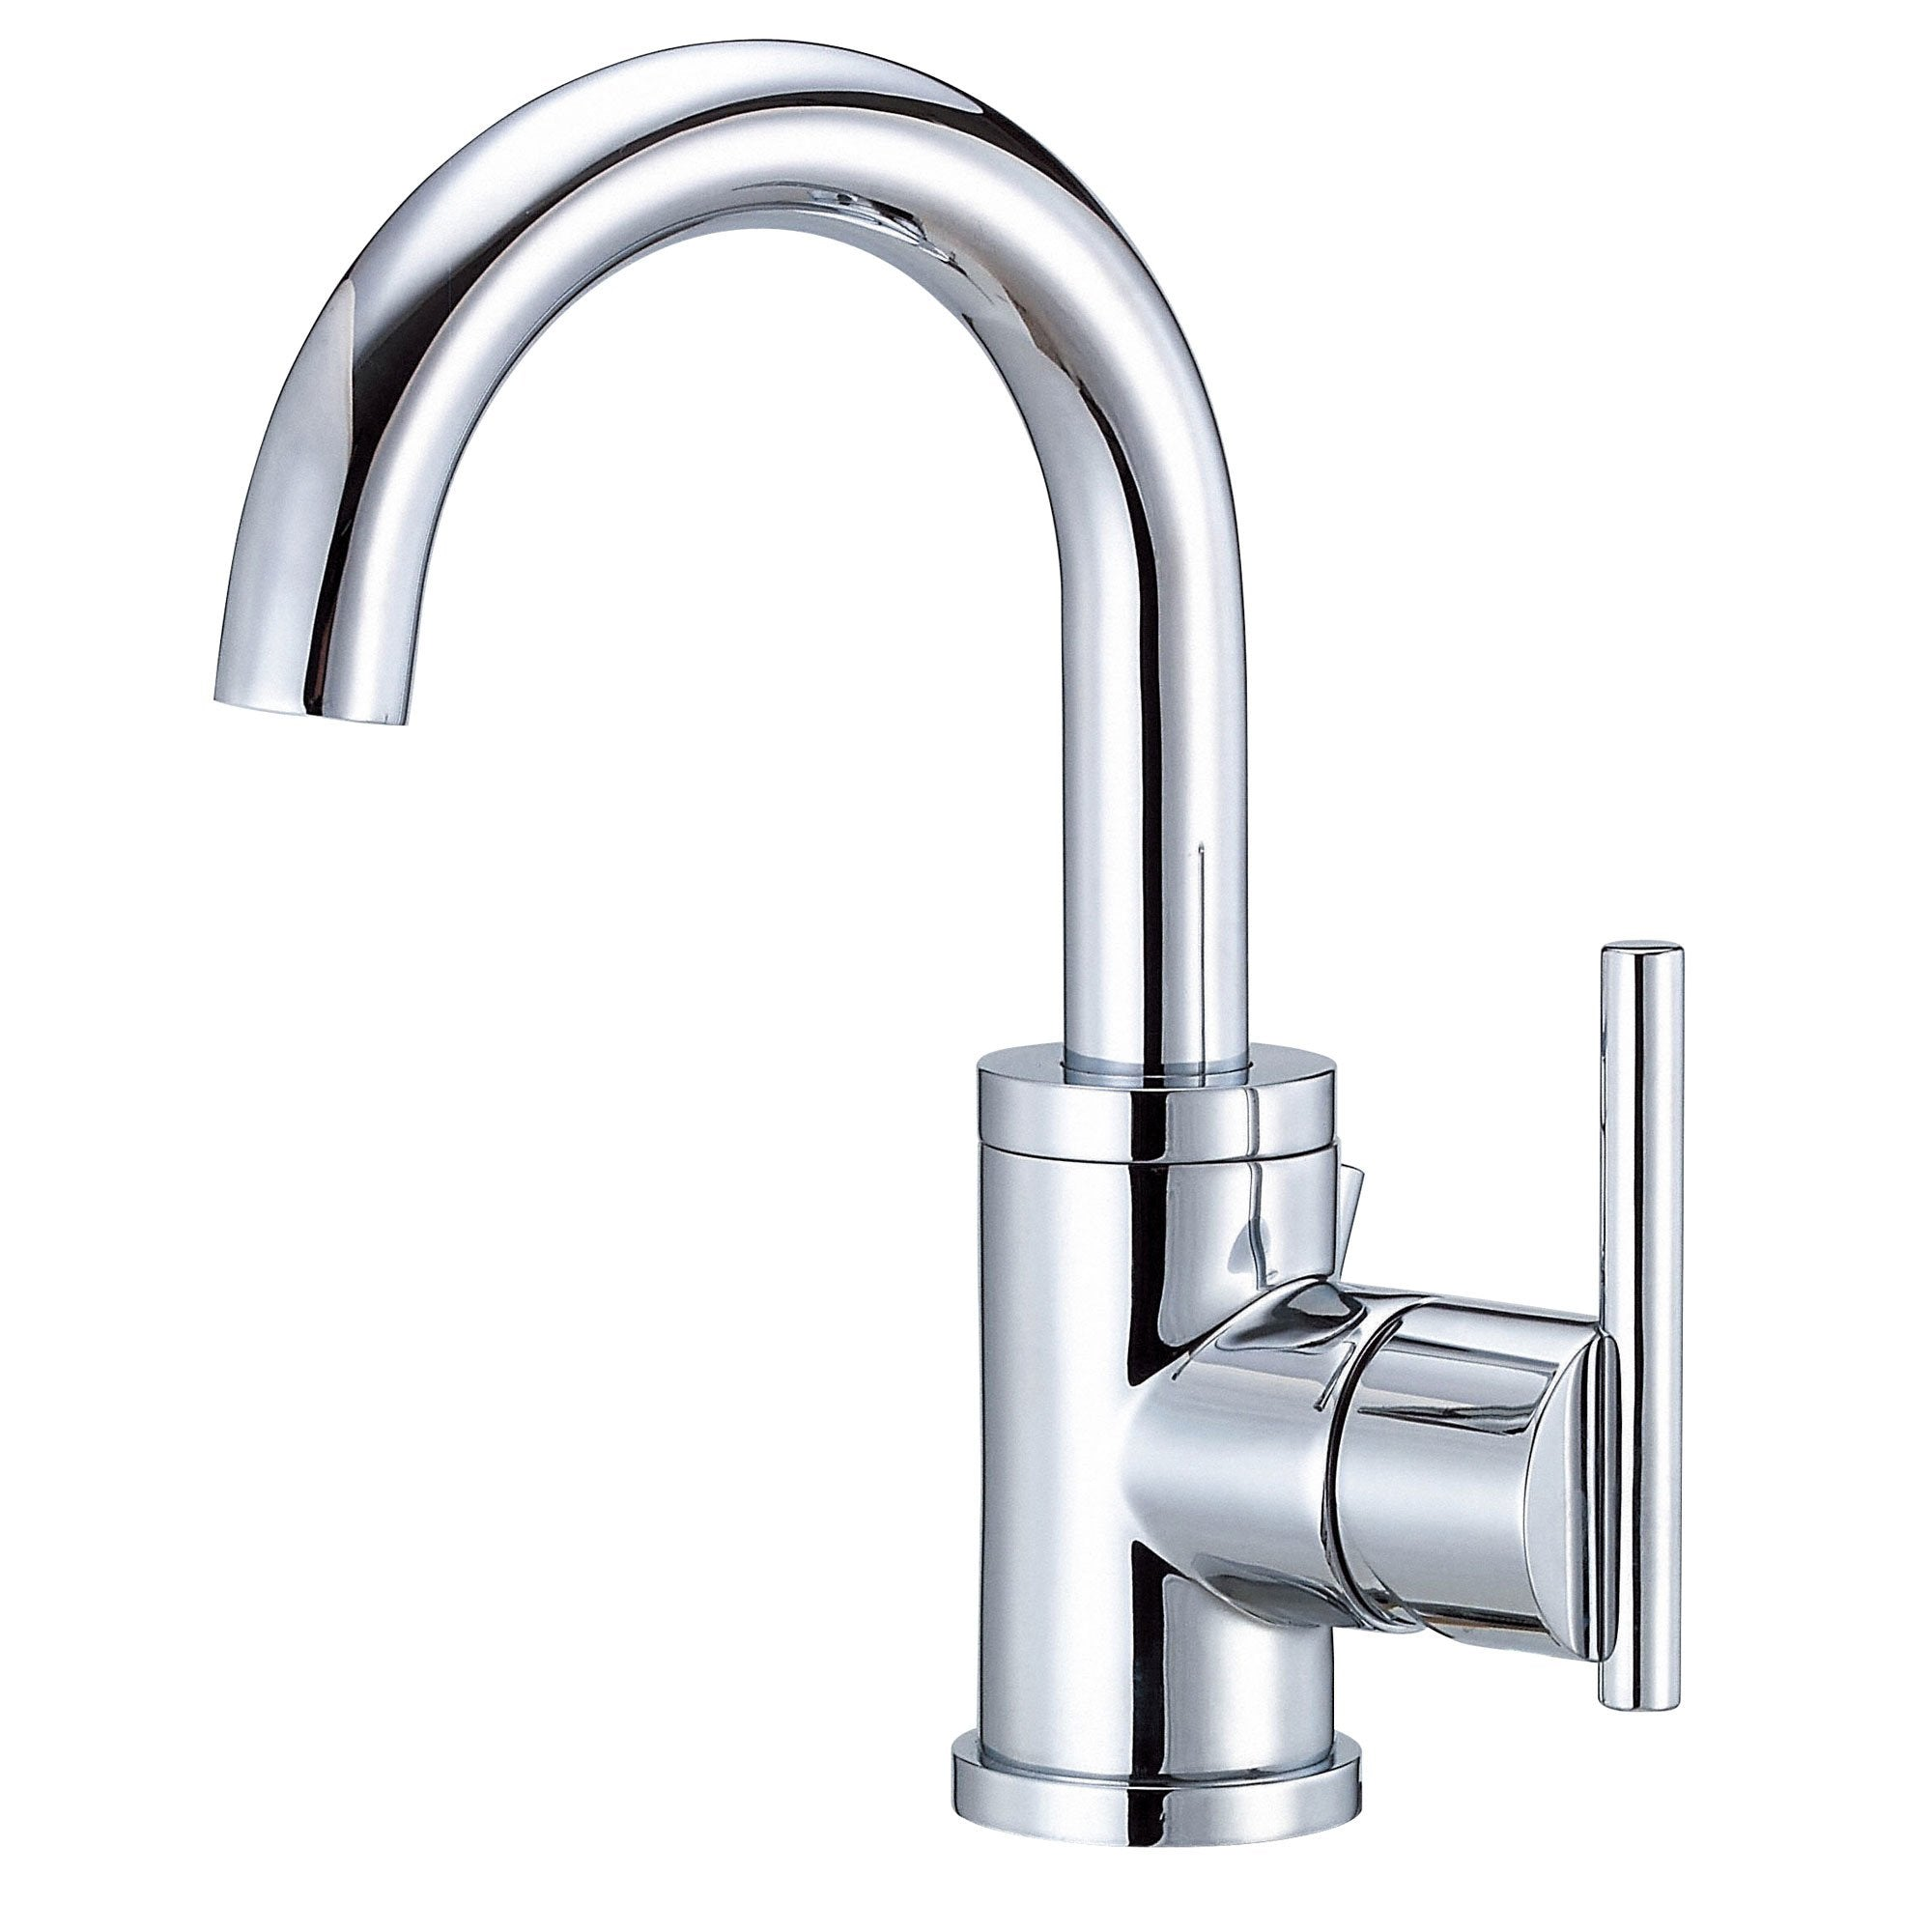 Danze Parma Chrome Single Handle Bathroom Centerset Faucet